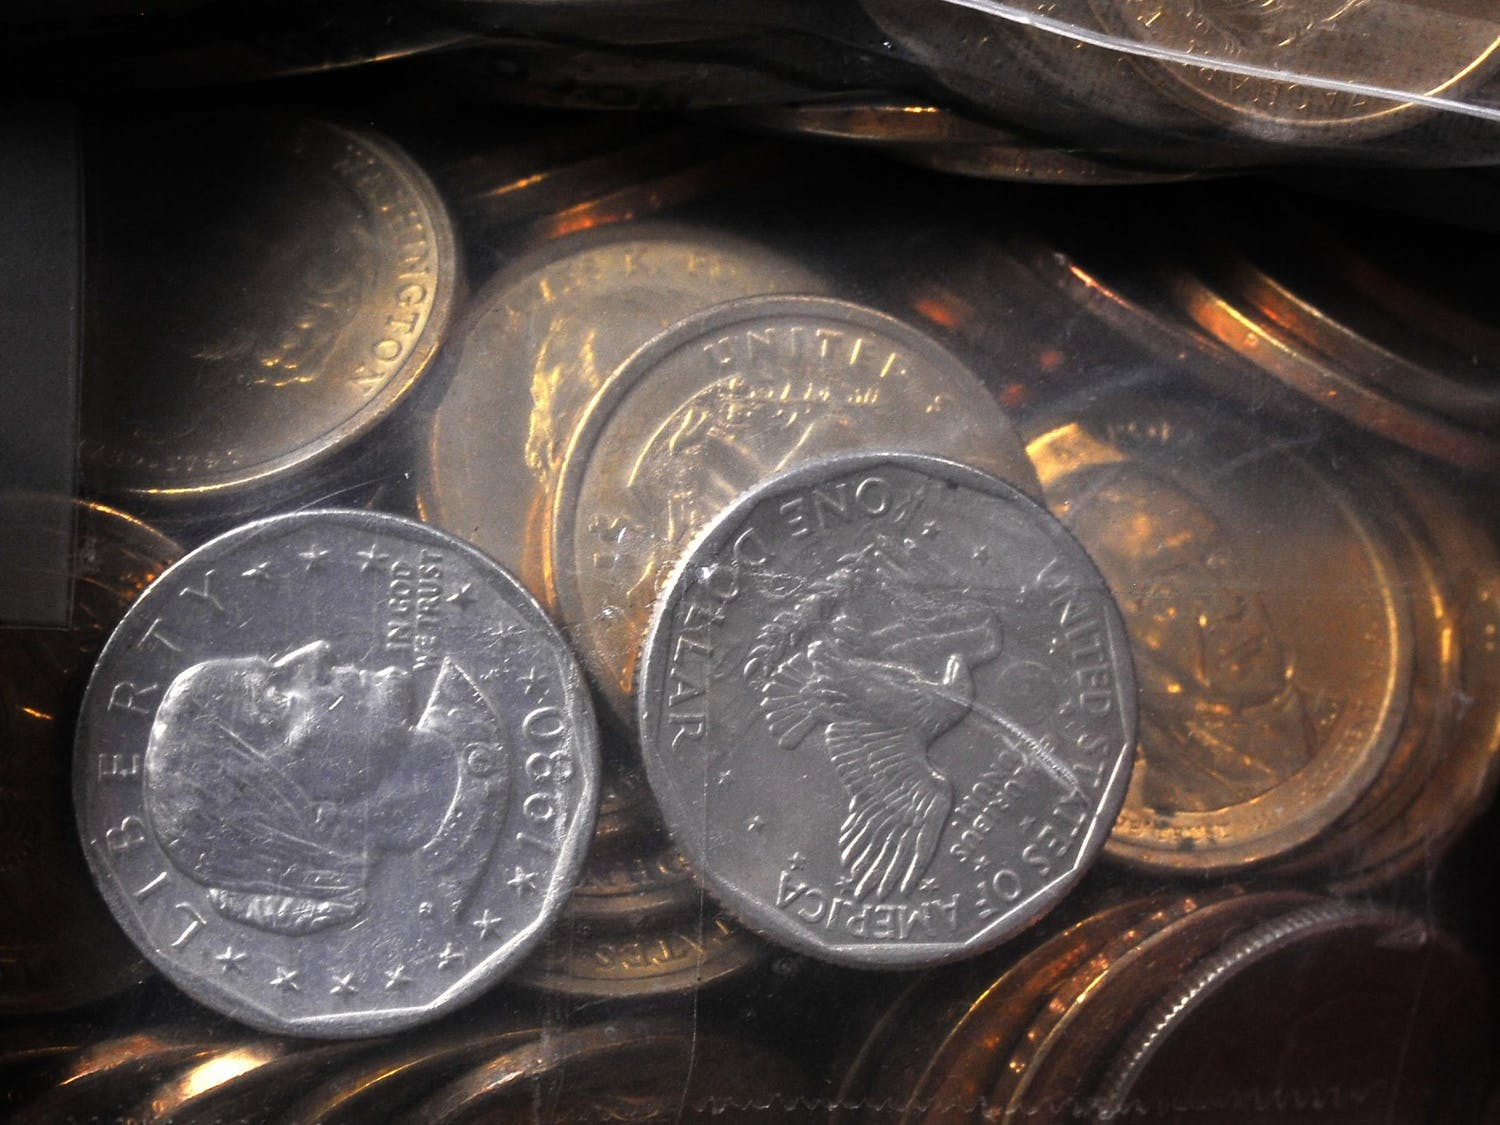 The United States of America's $1 dollar coins.